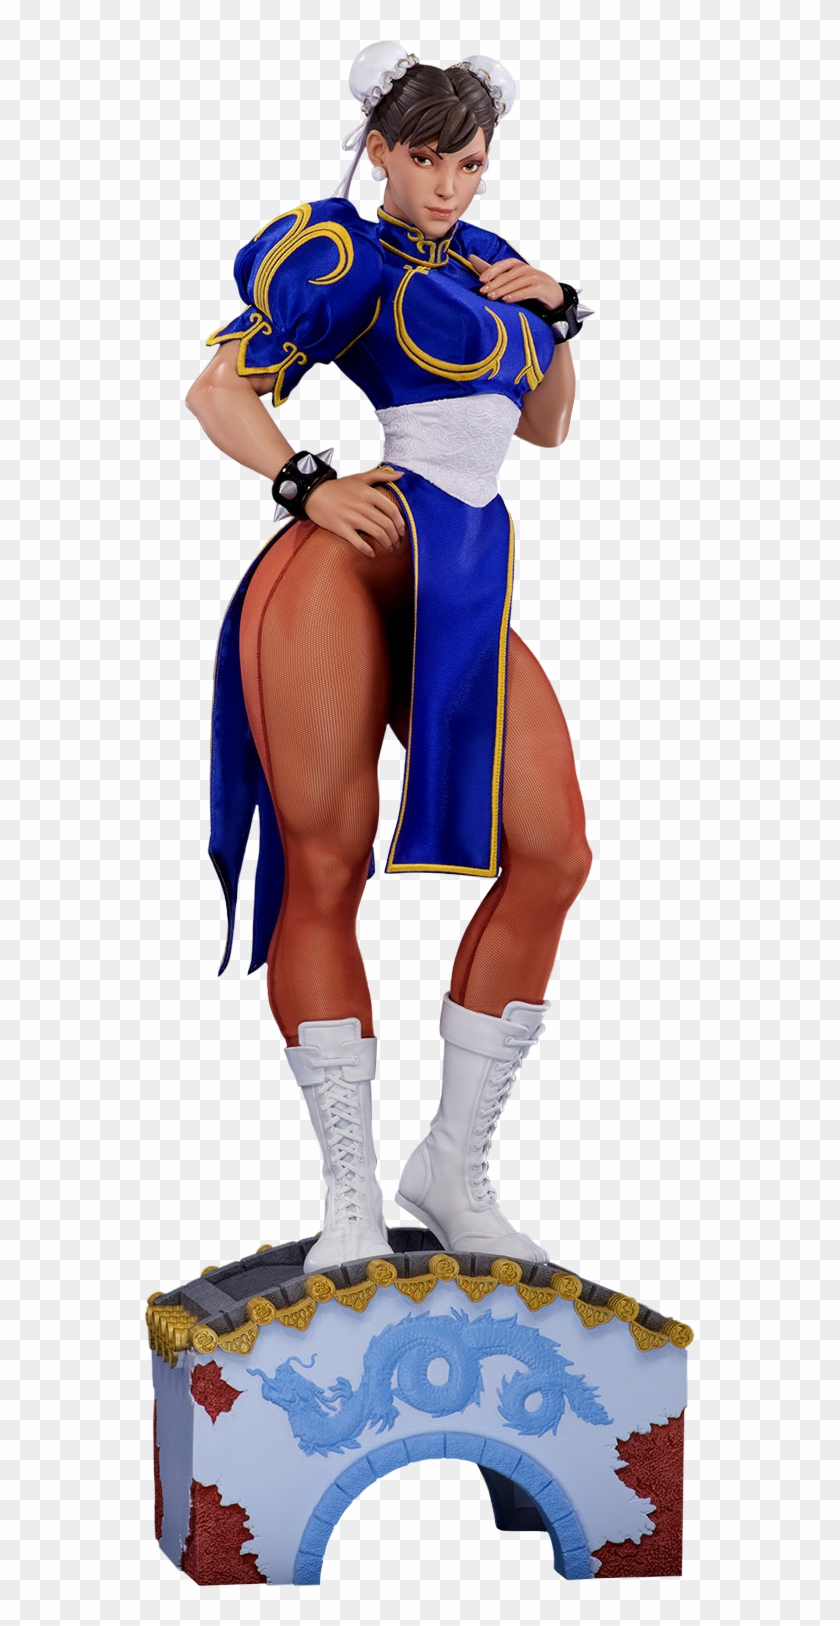 Street Fighter Ii Street Fighter Chun Li Statue Clipart 696956 Pikpng